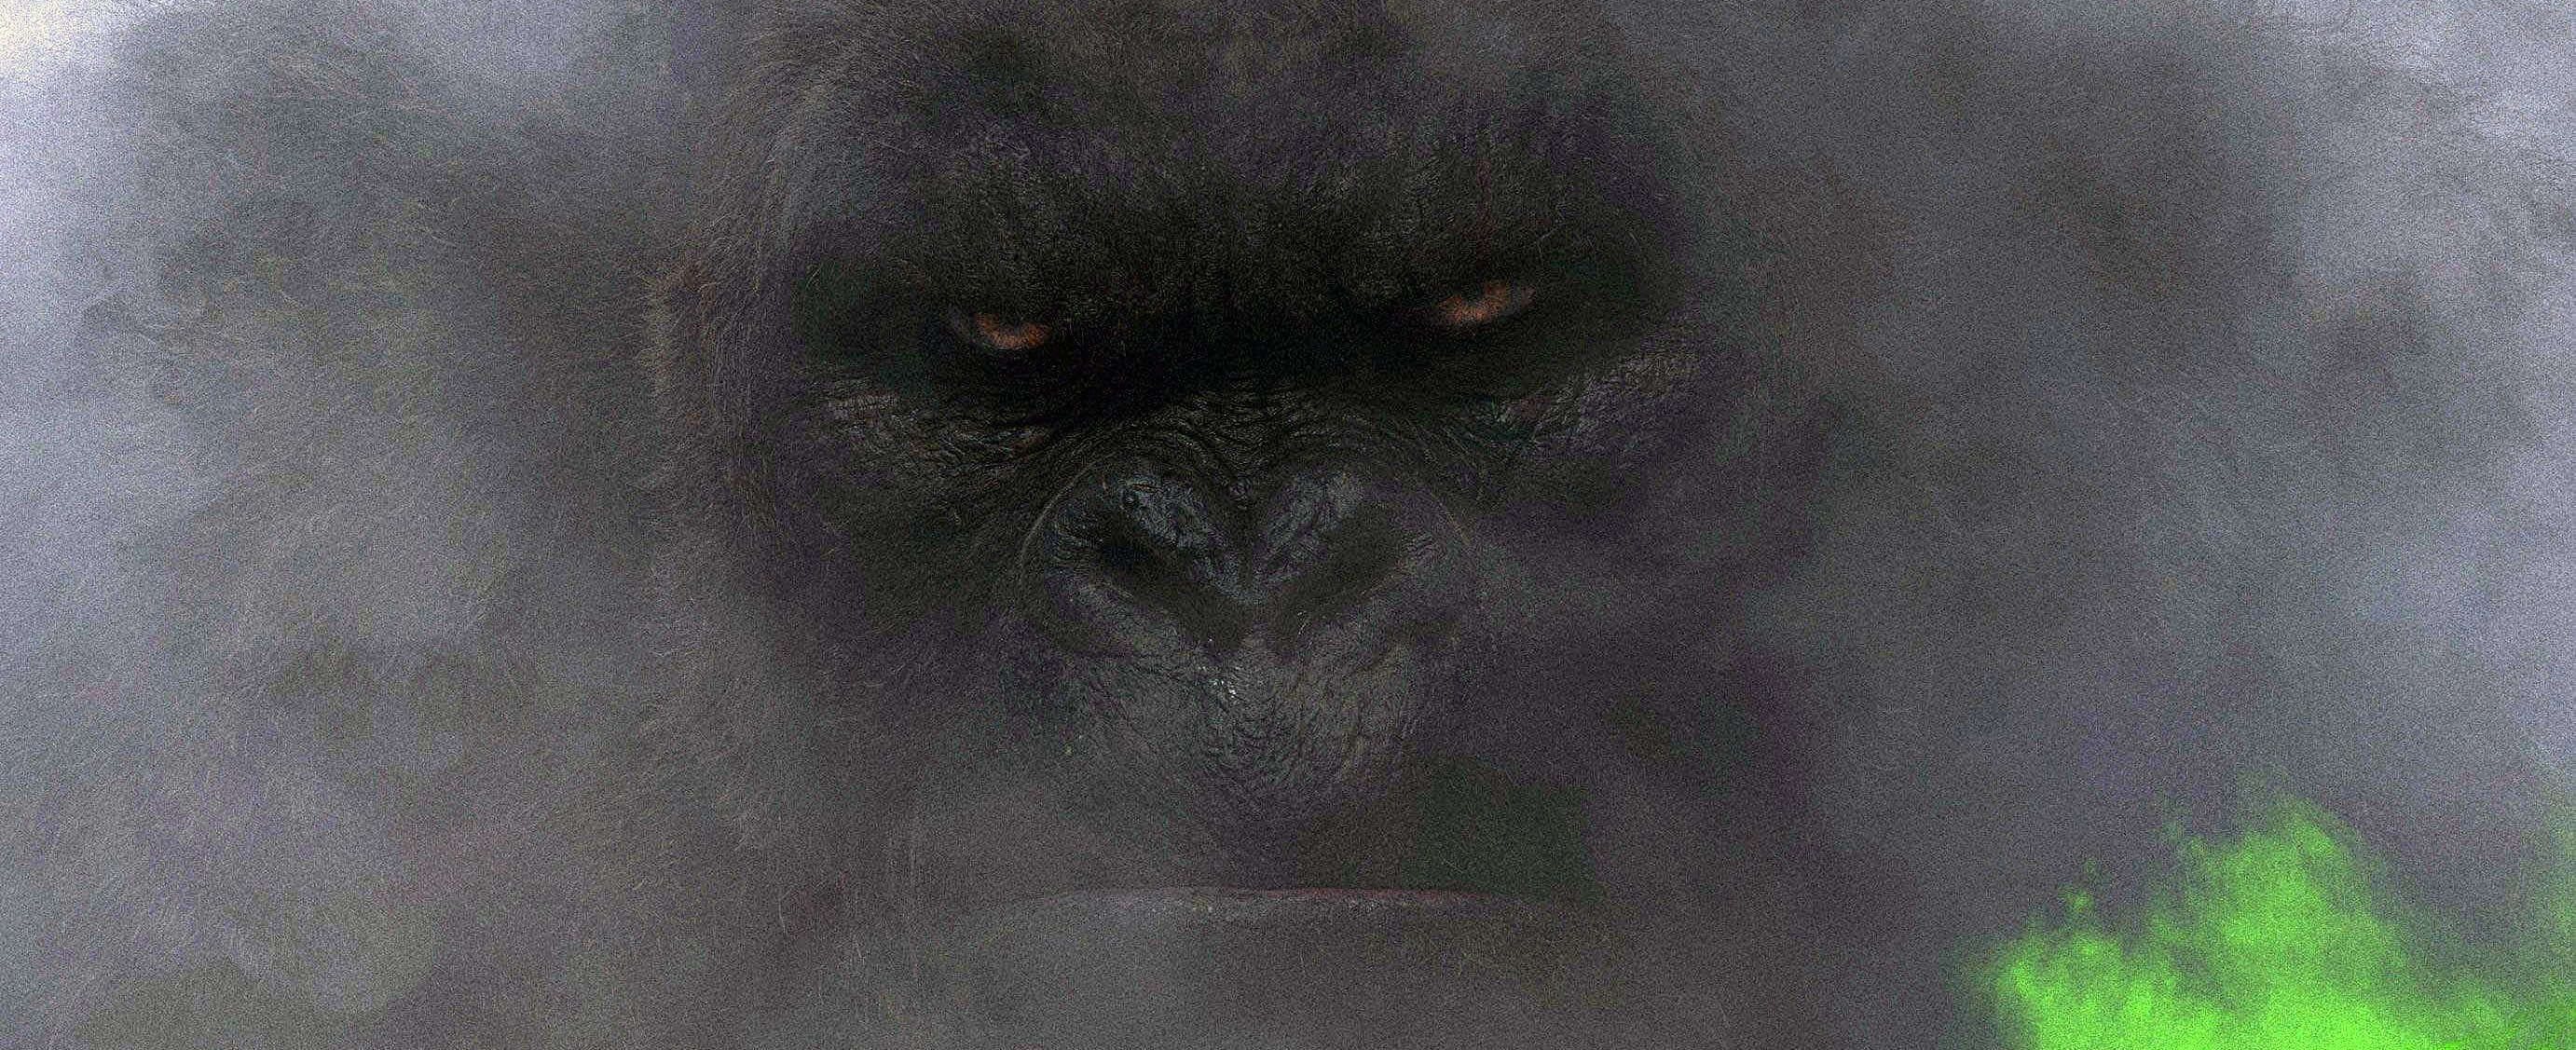 Kong: Skull Island Screensavers